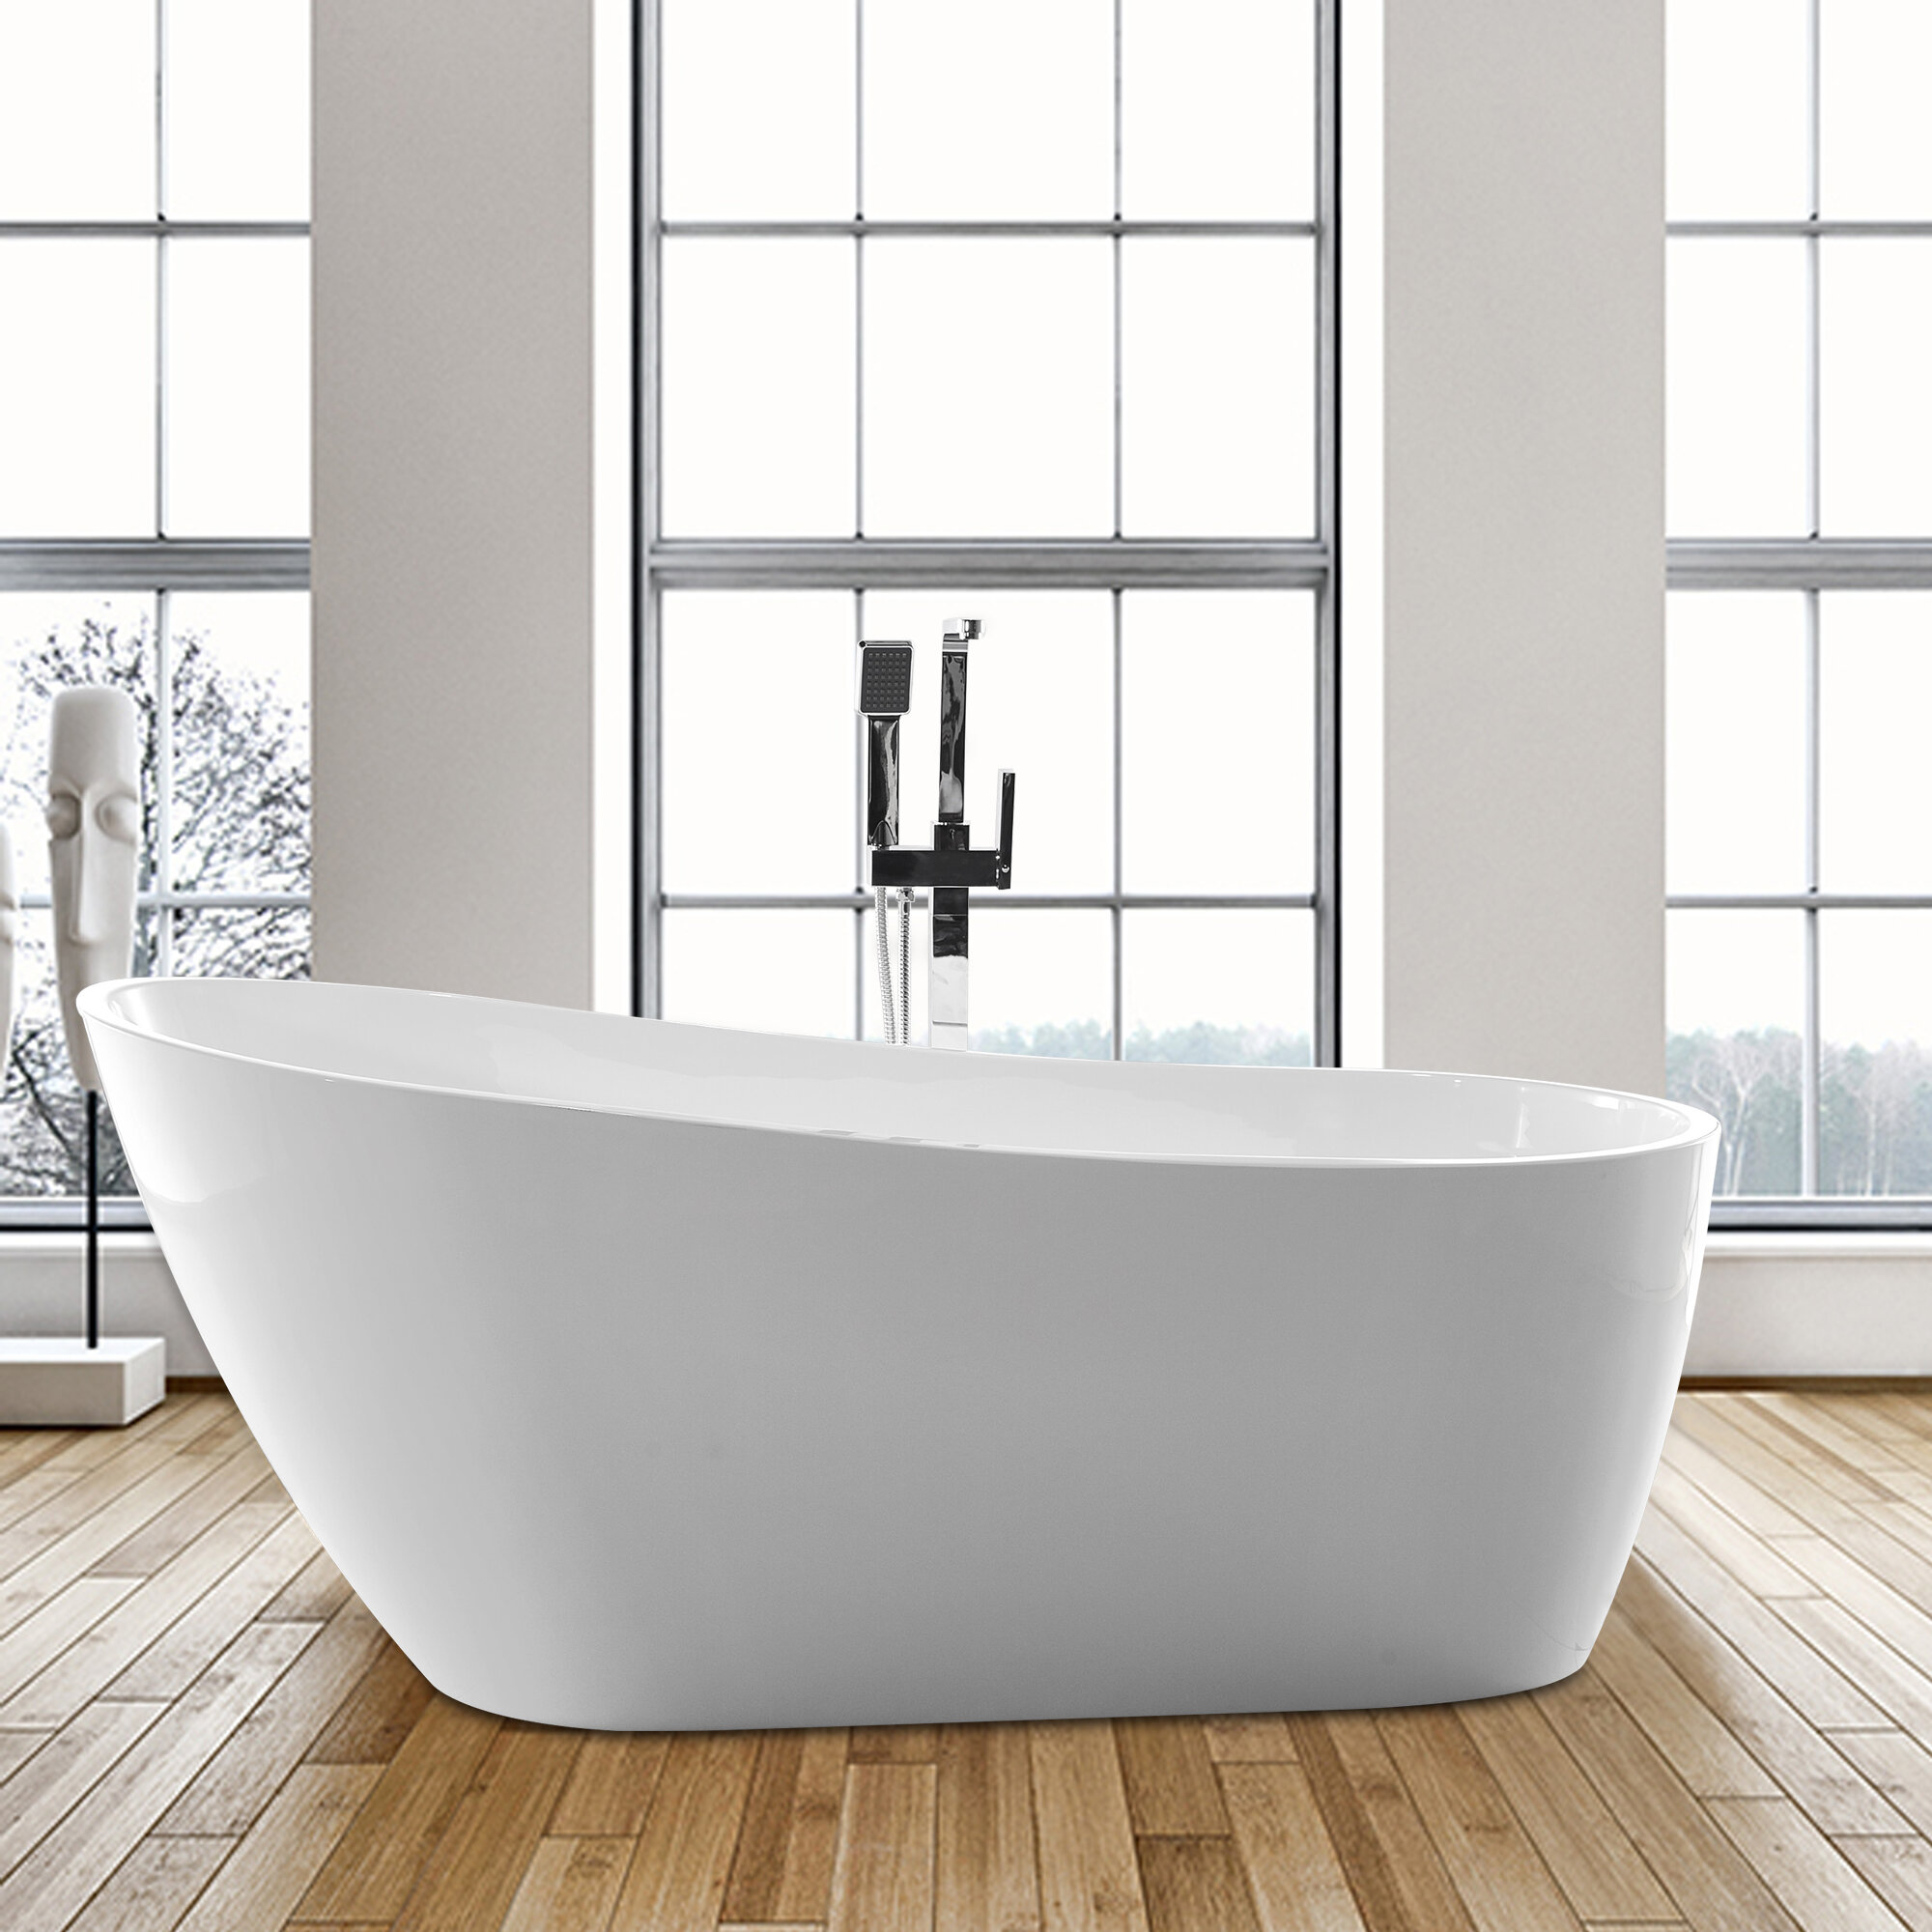 Vanity Art 55 X 28 Freestanding Soaking Bathtub Reviews Wayfair